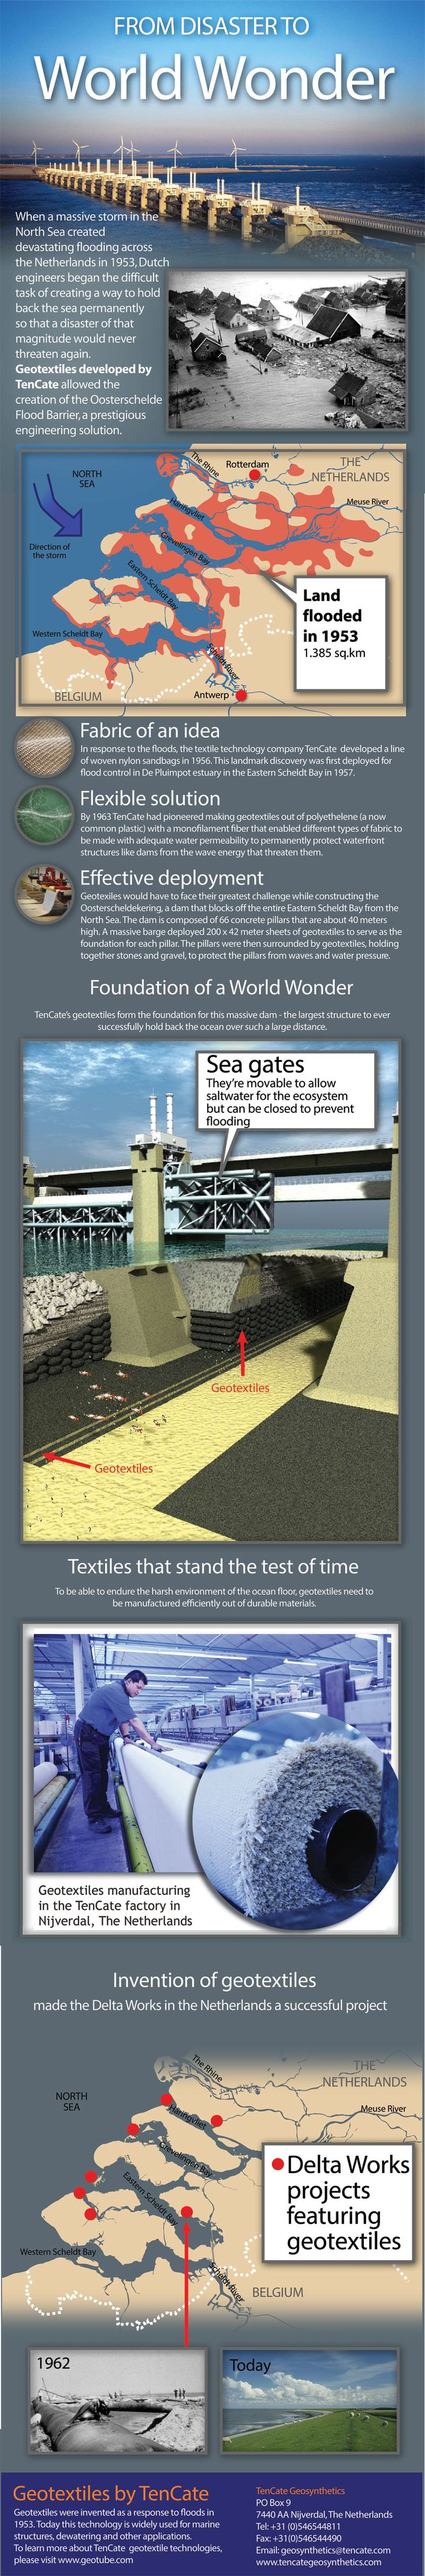 This infographic shows how geotextiles was used in the Deltaworks in the #Netherlands. Geotextiles is a super strong synthetic fabric invented nearly 60 years ago by Tenkate